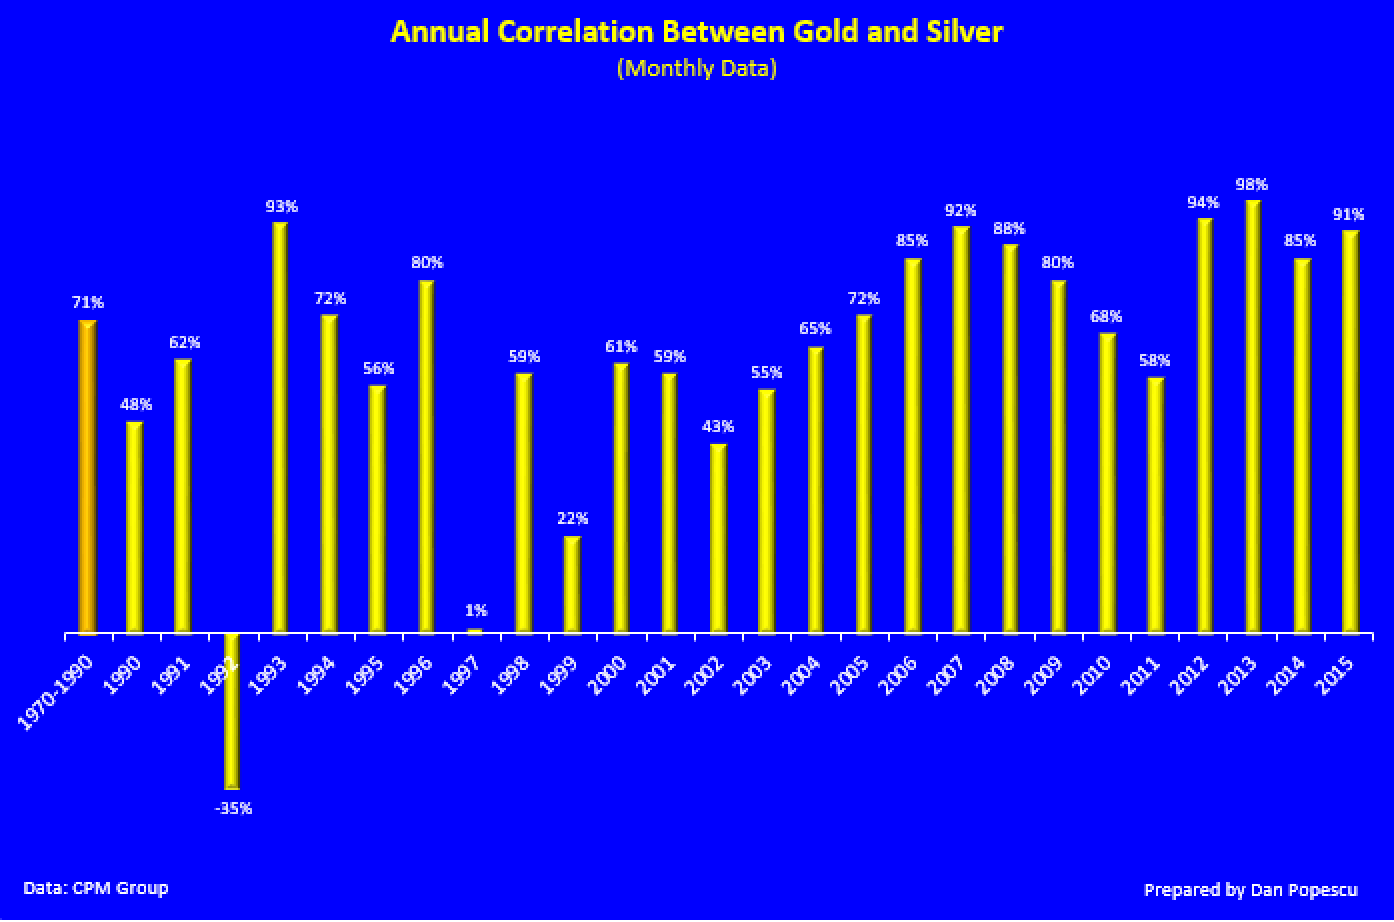 Annual correlation between gold and silver